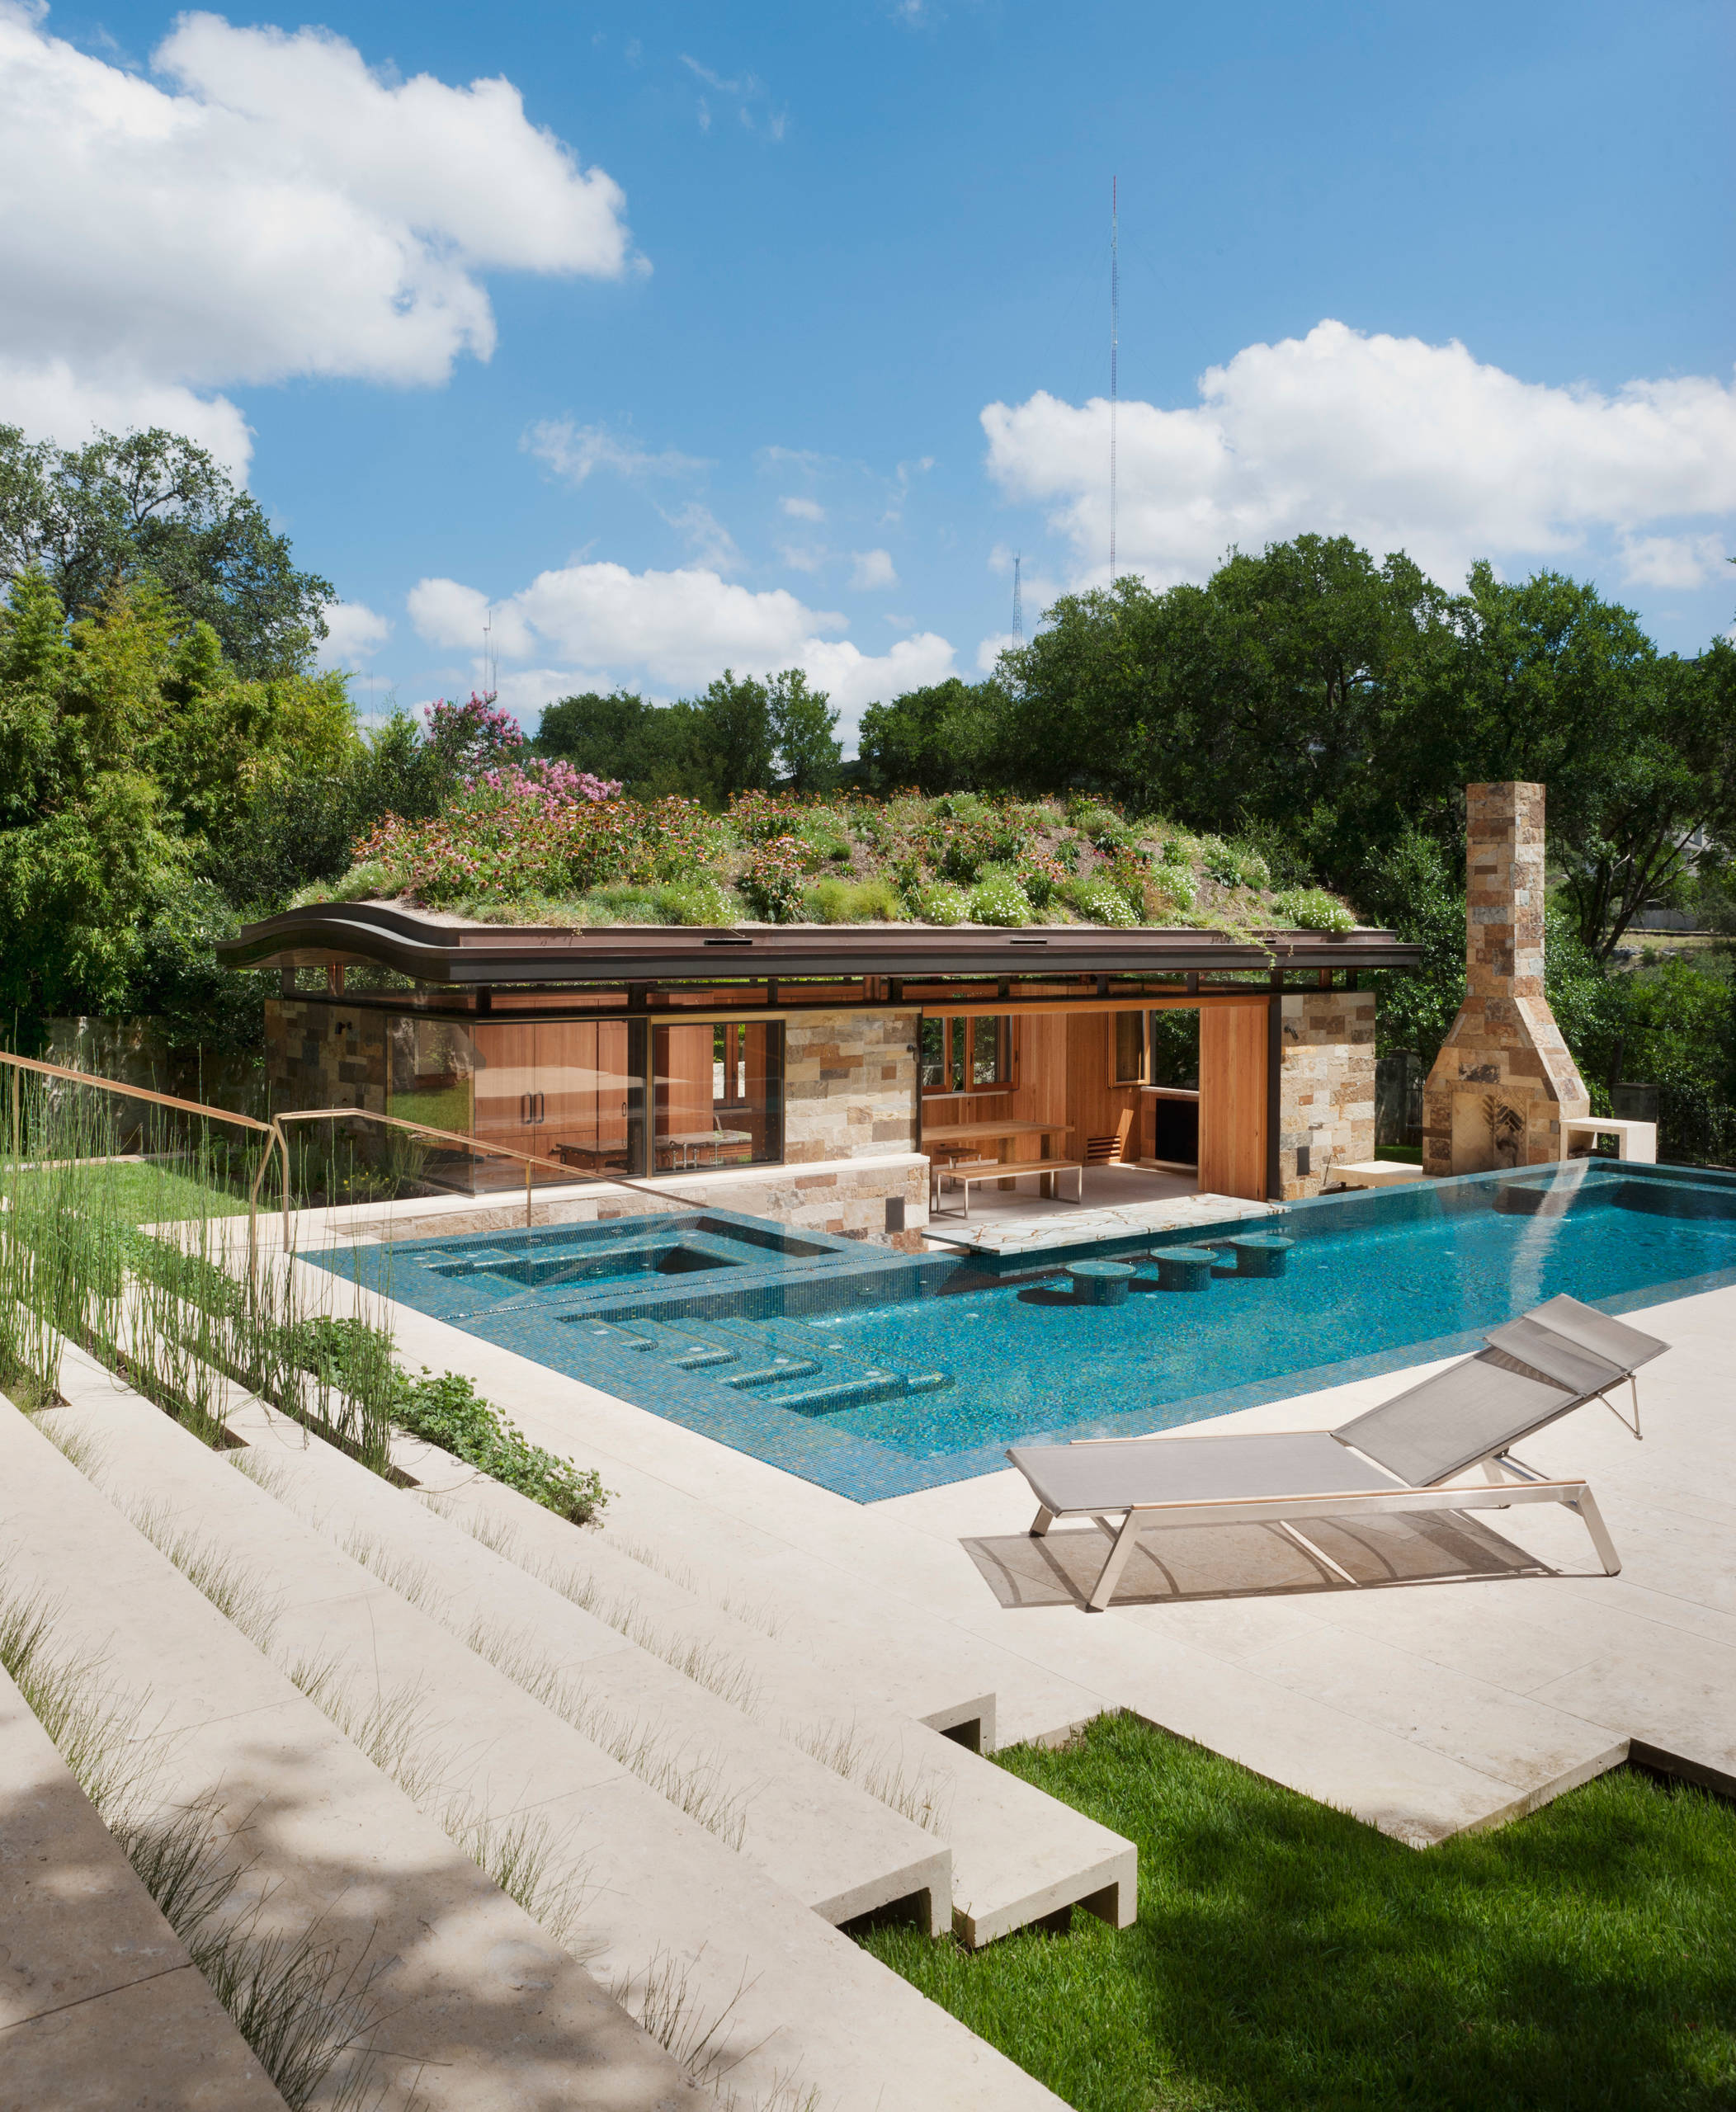 75 Beautiful L Shaped Pool Pictures Ideas March 2021 Houzz